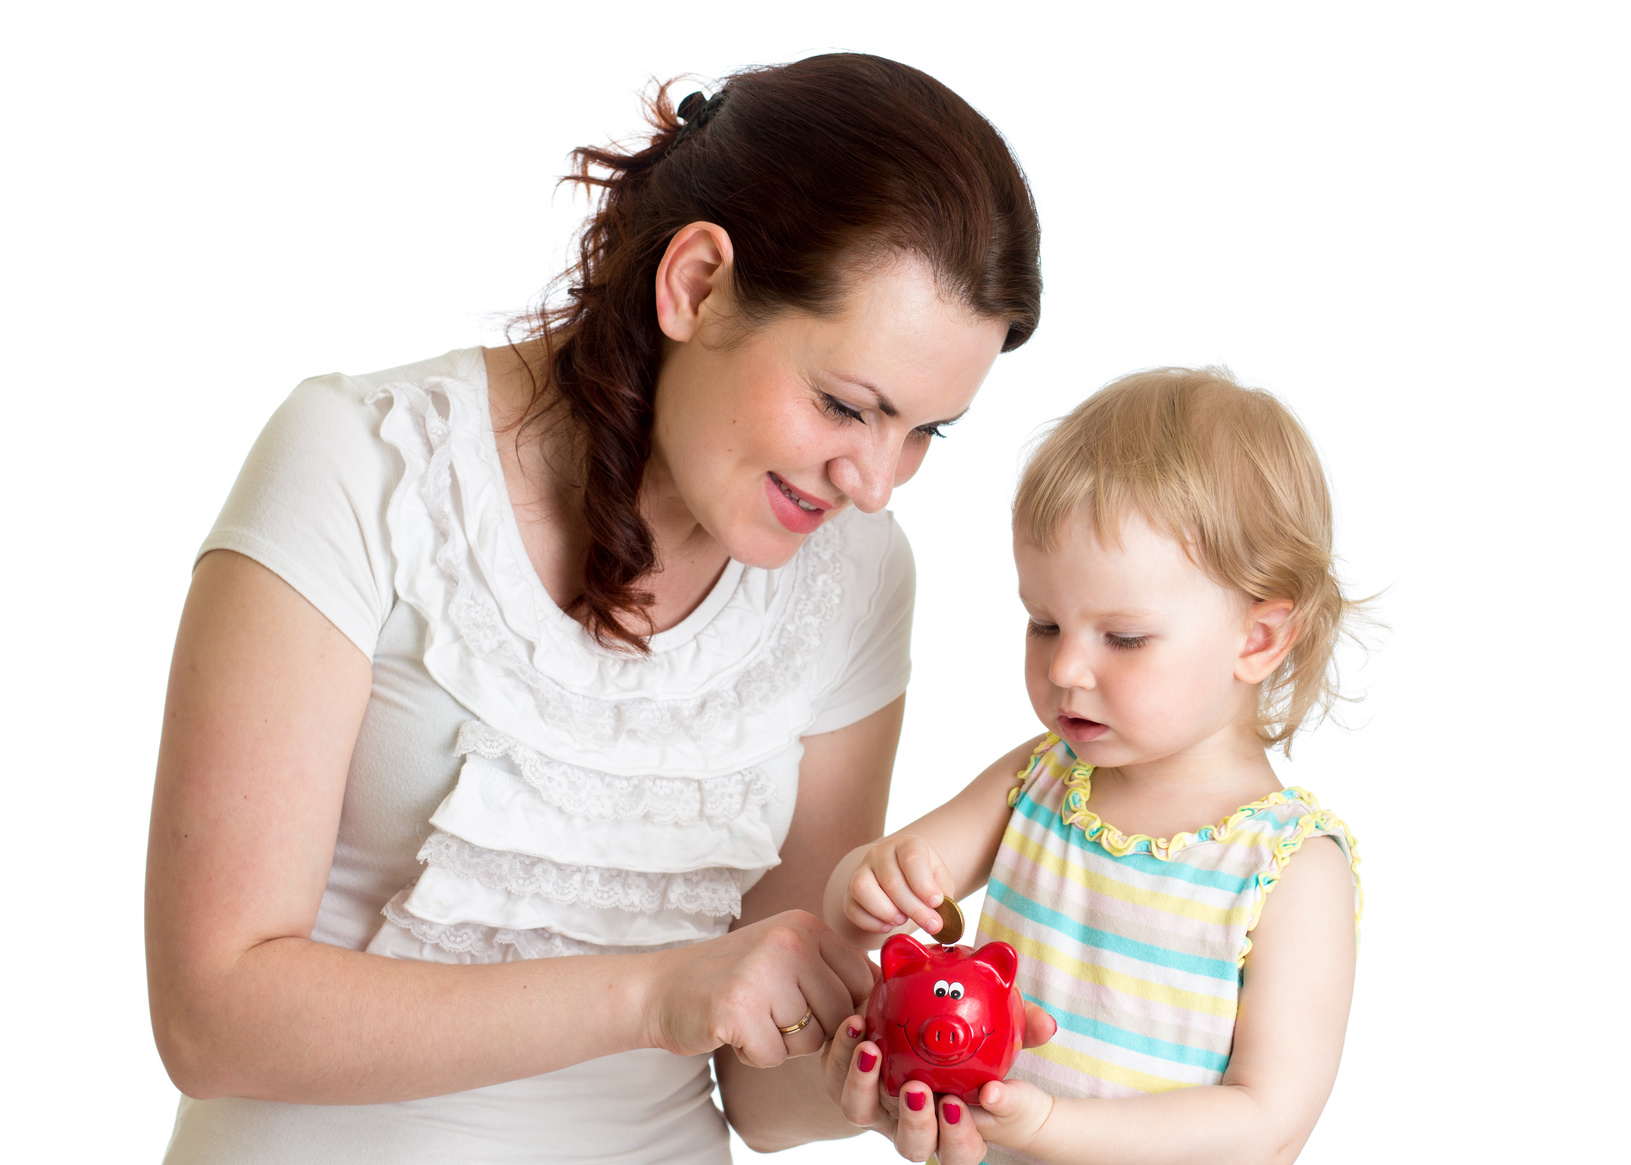 Tips and Tricks for Deciding a Child's Allowance Money